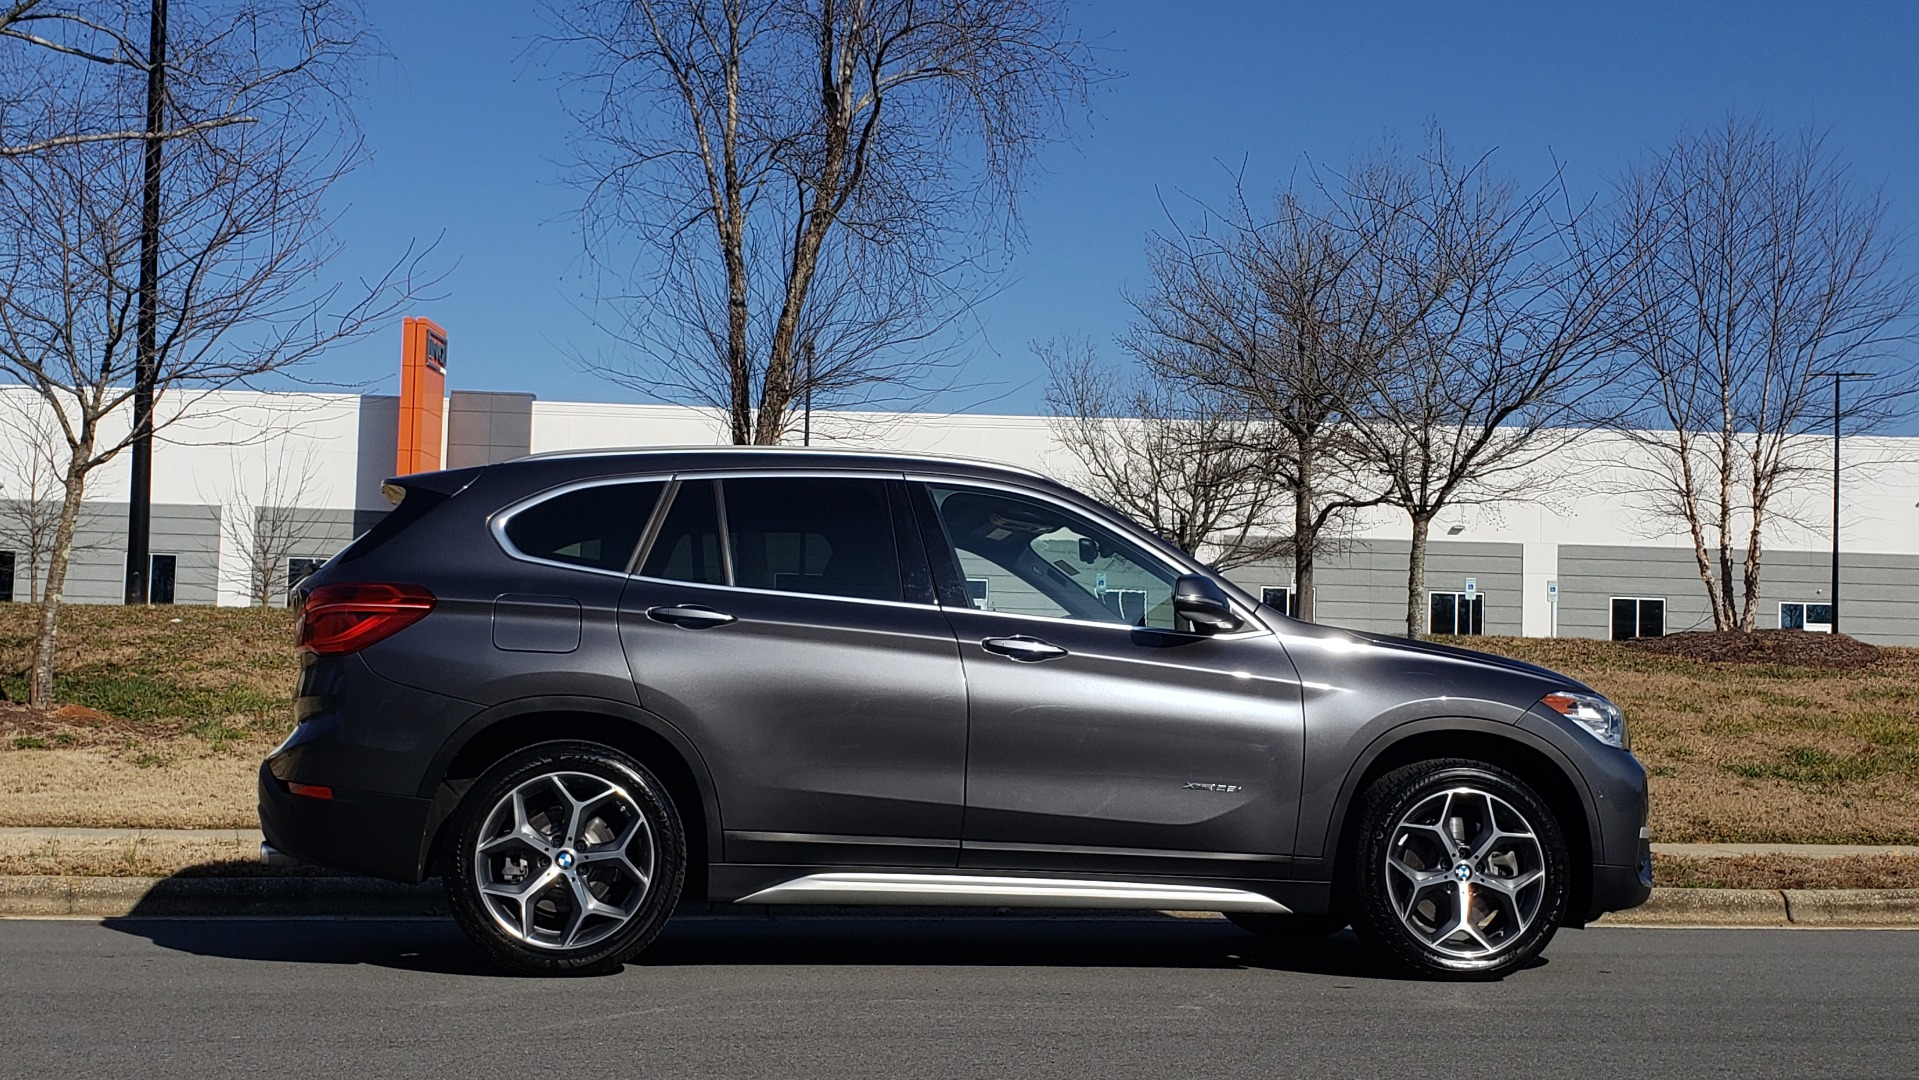 Used 2017 BMW X1 XDRIVE28I / PREM / TECH / DRVR ASST PLUS / COLD WTHR / REARVIEW for sale $26,995 at Formula Imports in Charlotte NC 28227 5